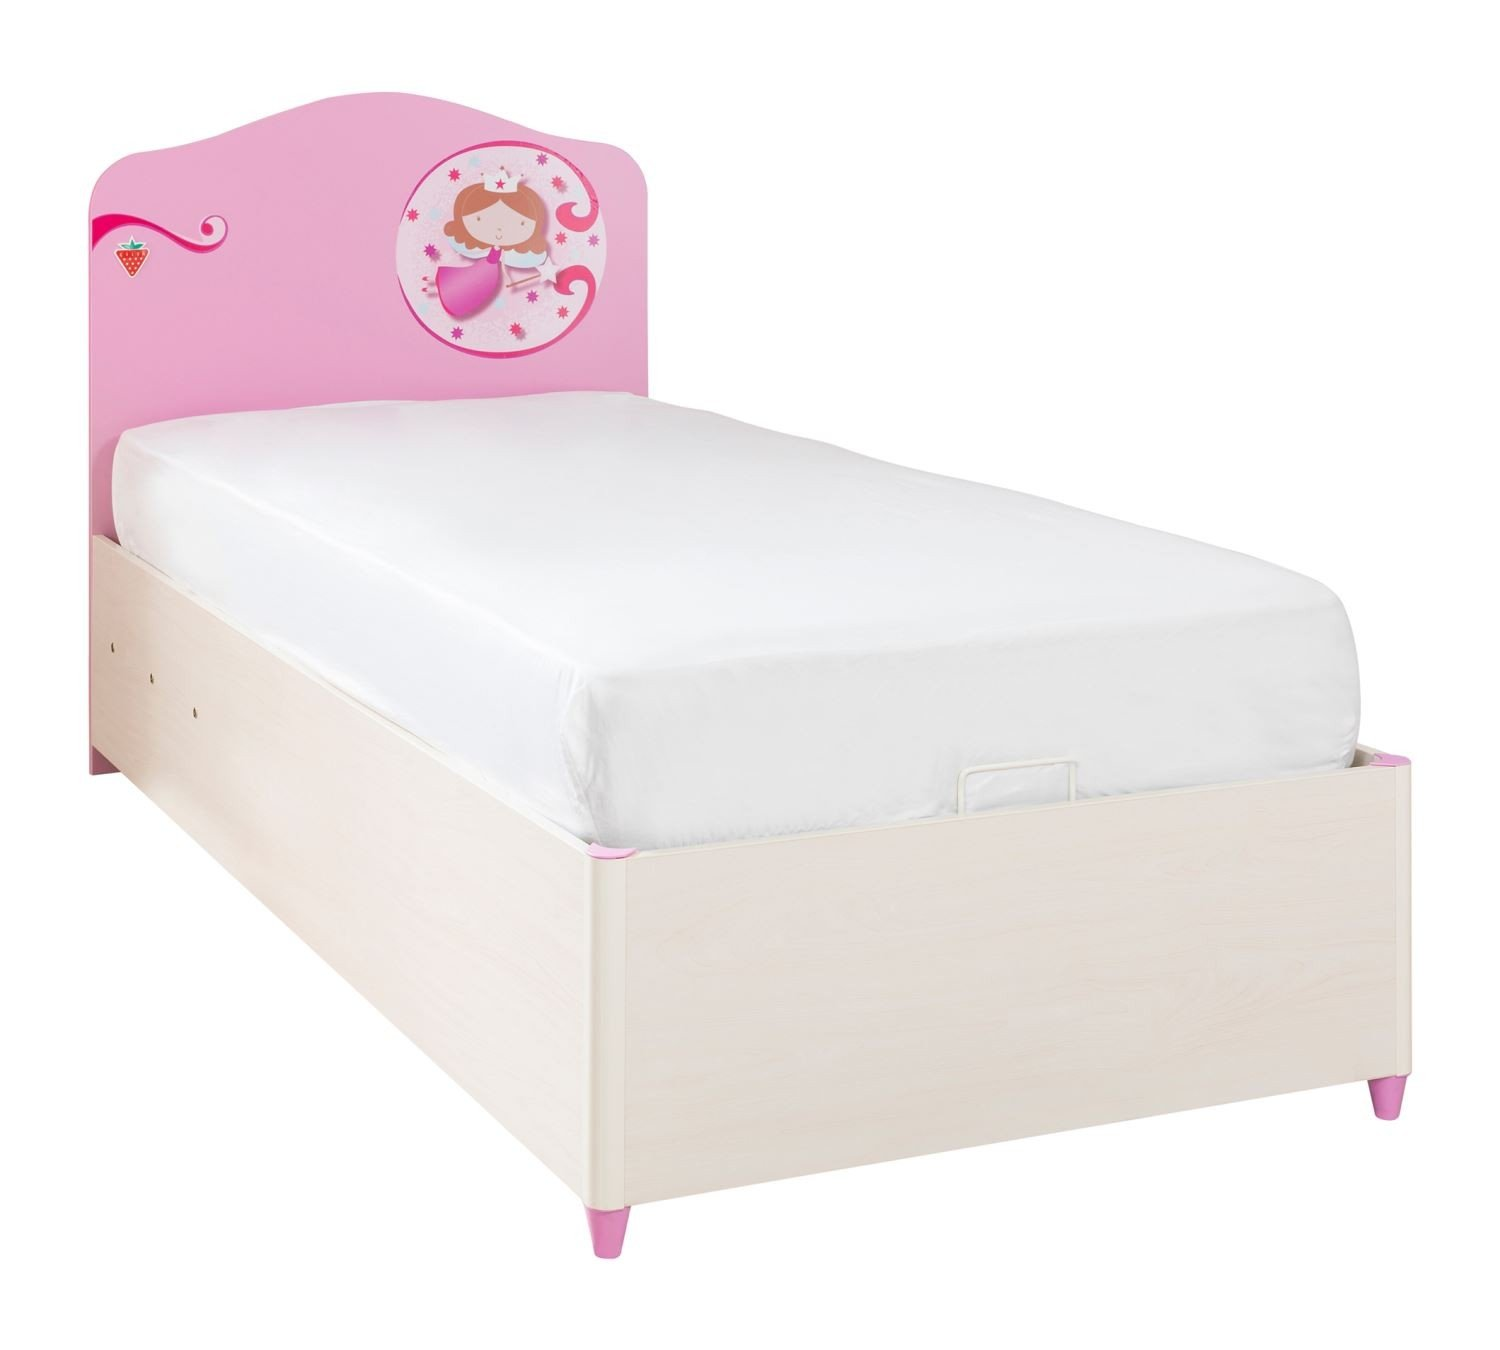 cilek princess bett mit stauraum 90x190cm panda kinderm bel. Black Bedroom Furniture Sets. Home Design Ideas